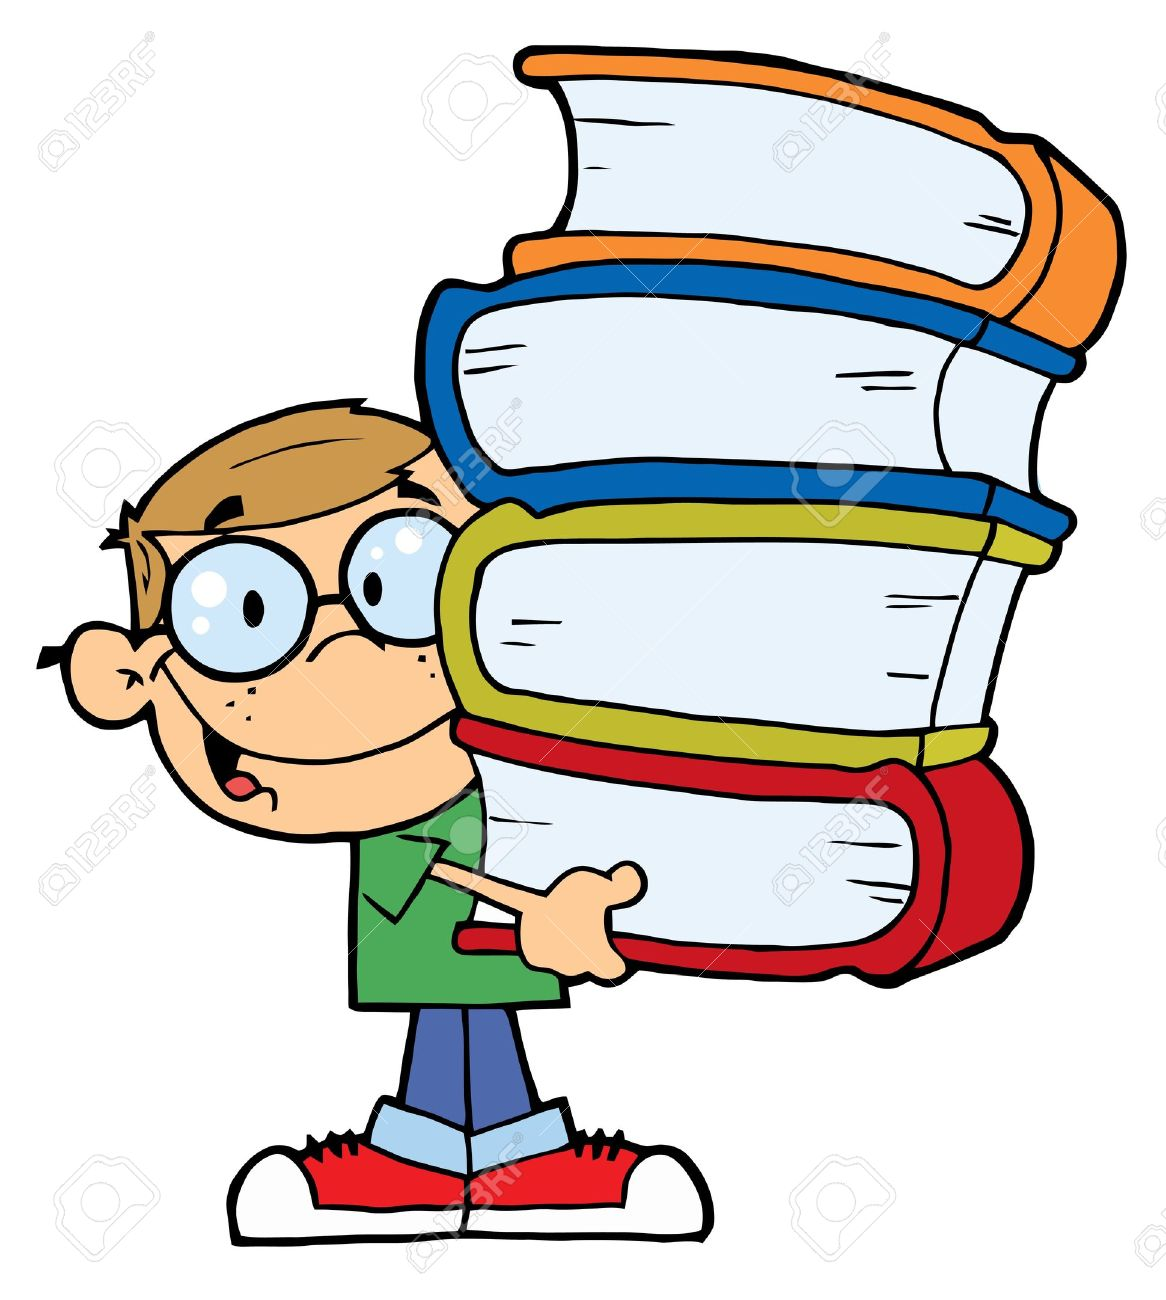 Cartoon Stack Of Books